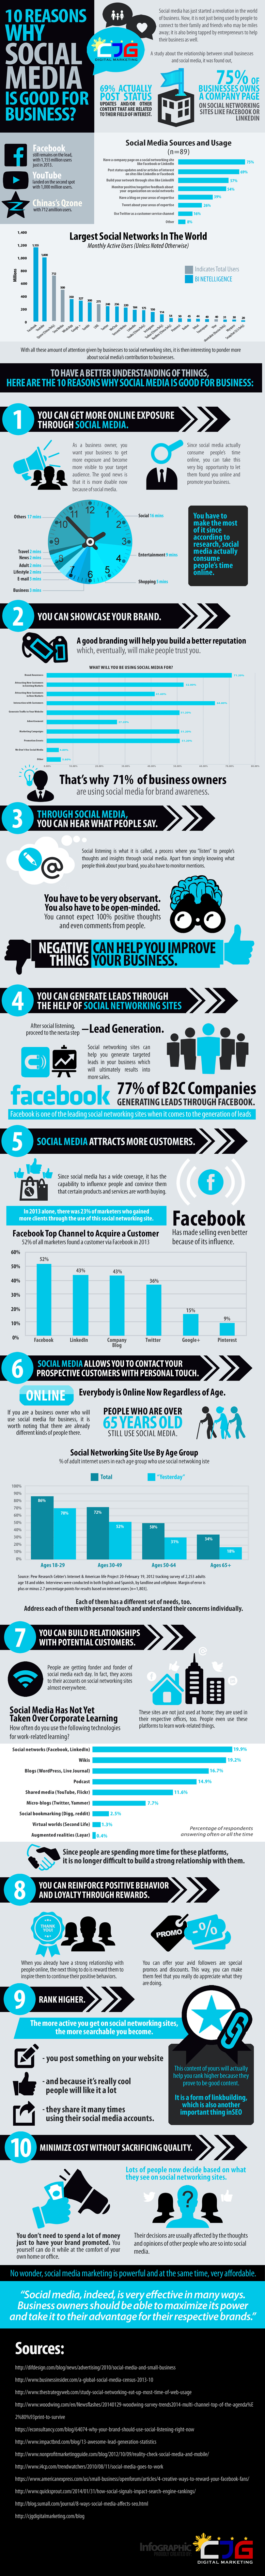 10-Reasons-Why-Social-Media-is-Good-for-Business